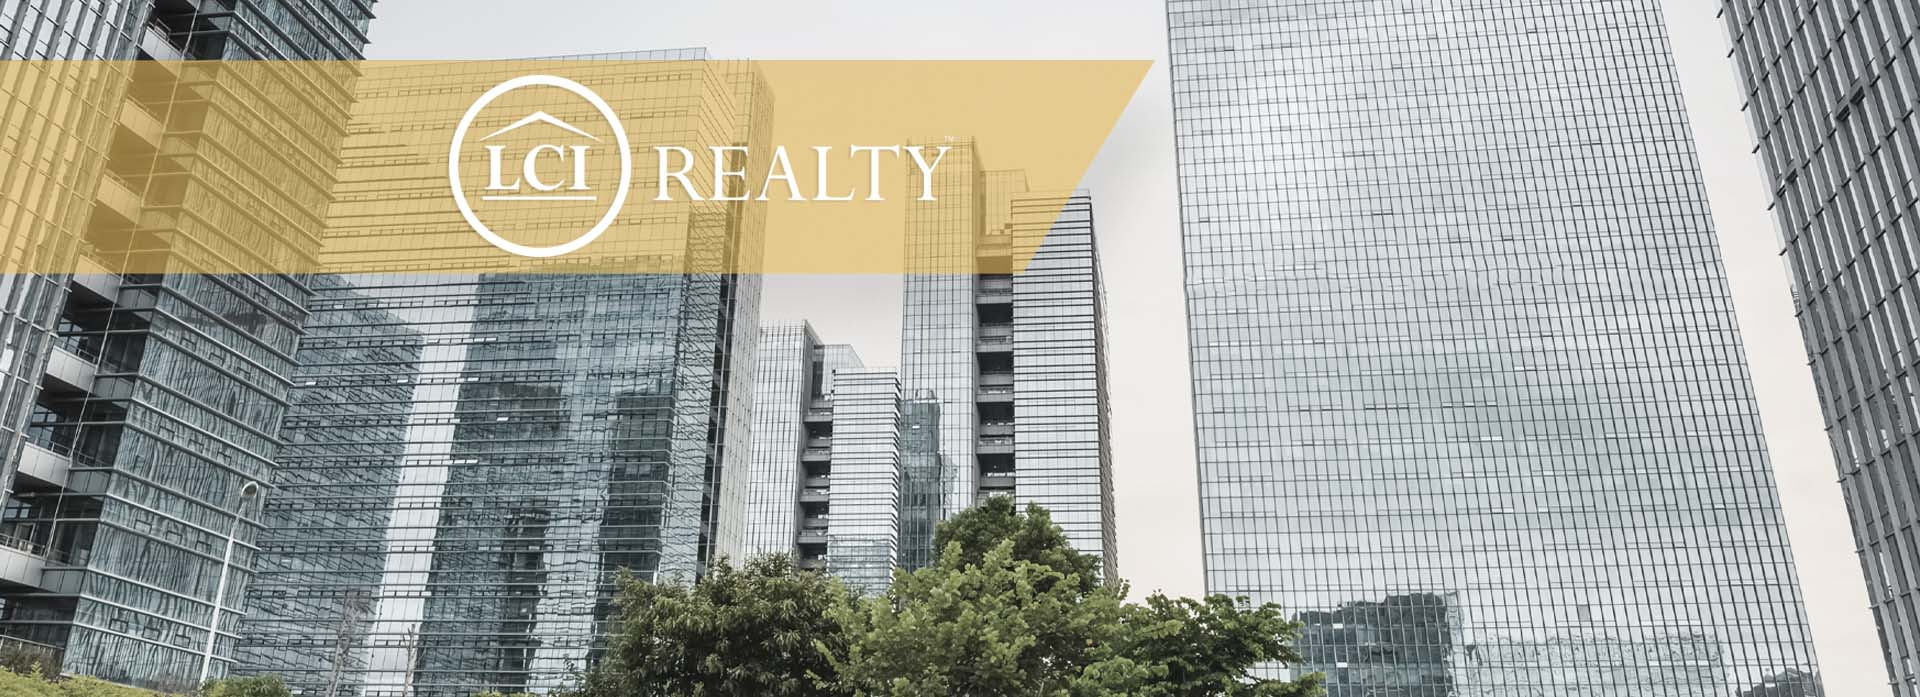 Ways commercial real estate will rebound post-COVID-19